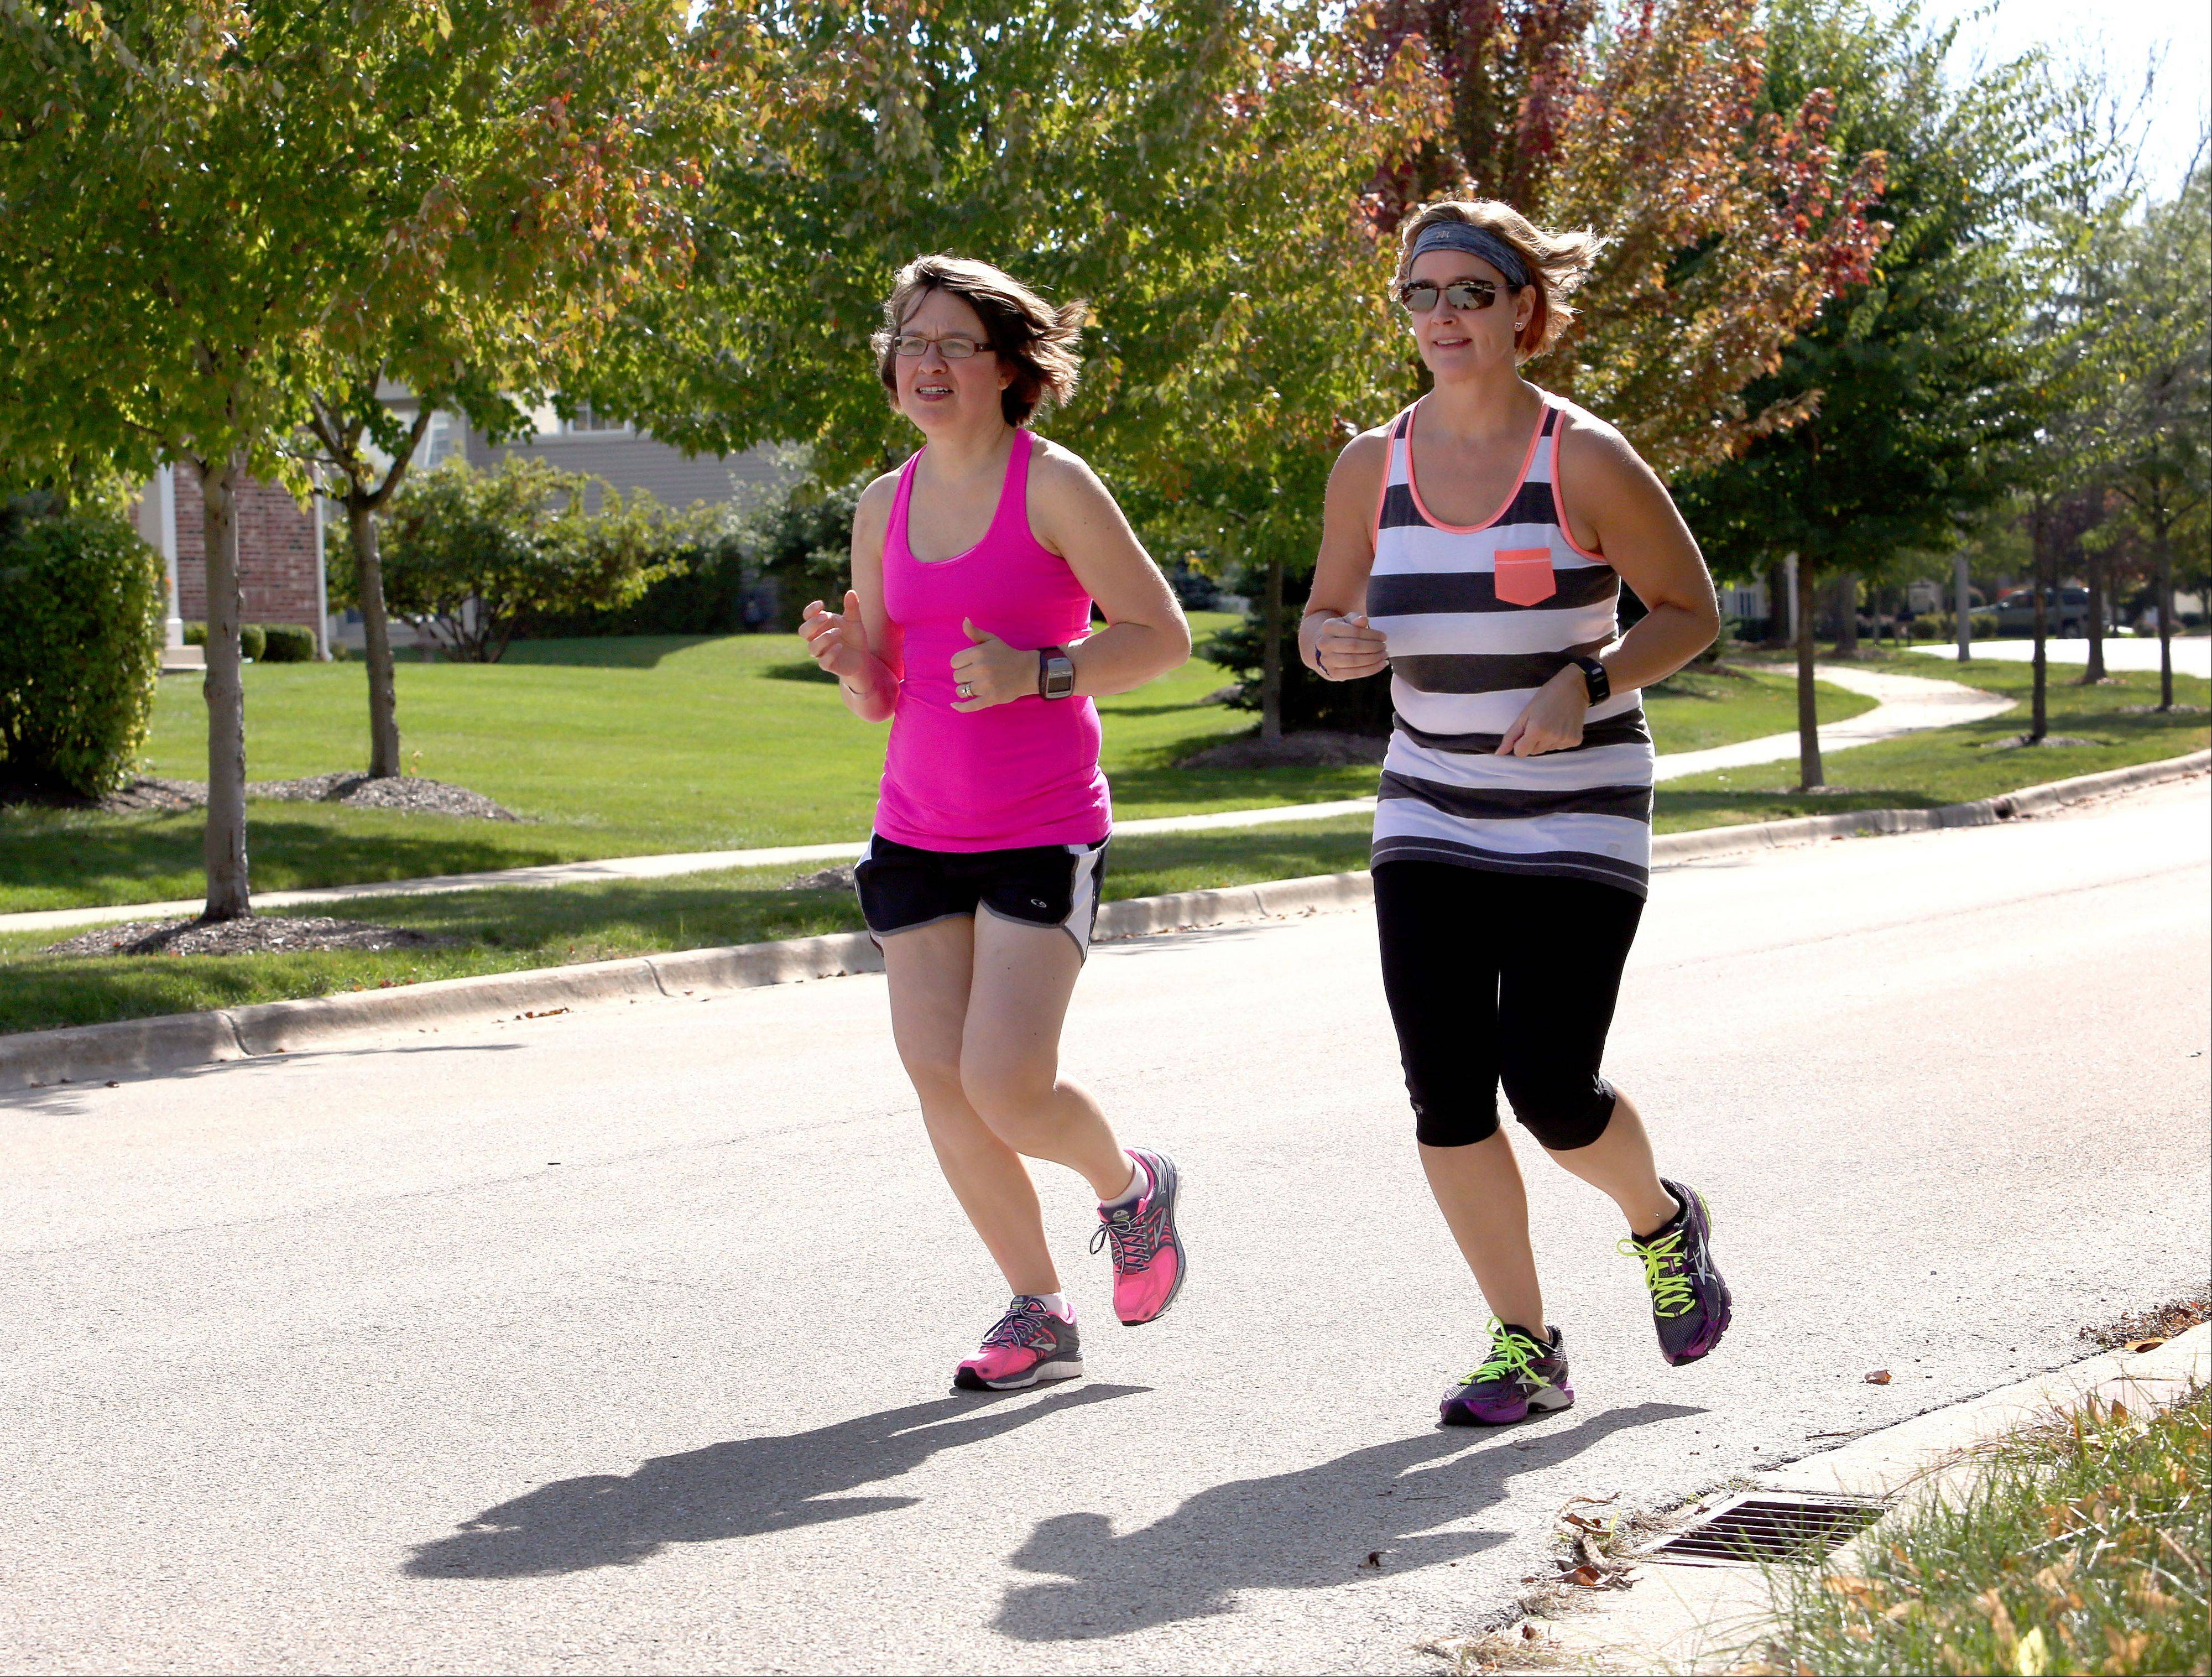 Suburban runners: Boston not deterring us from Chicago Marathon